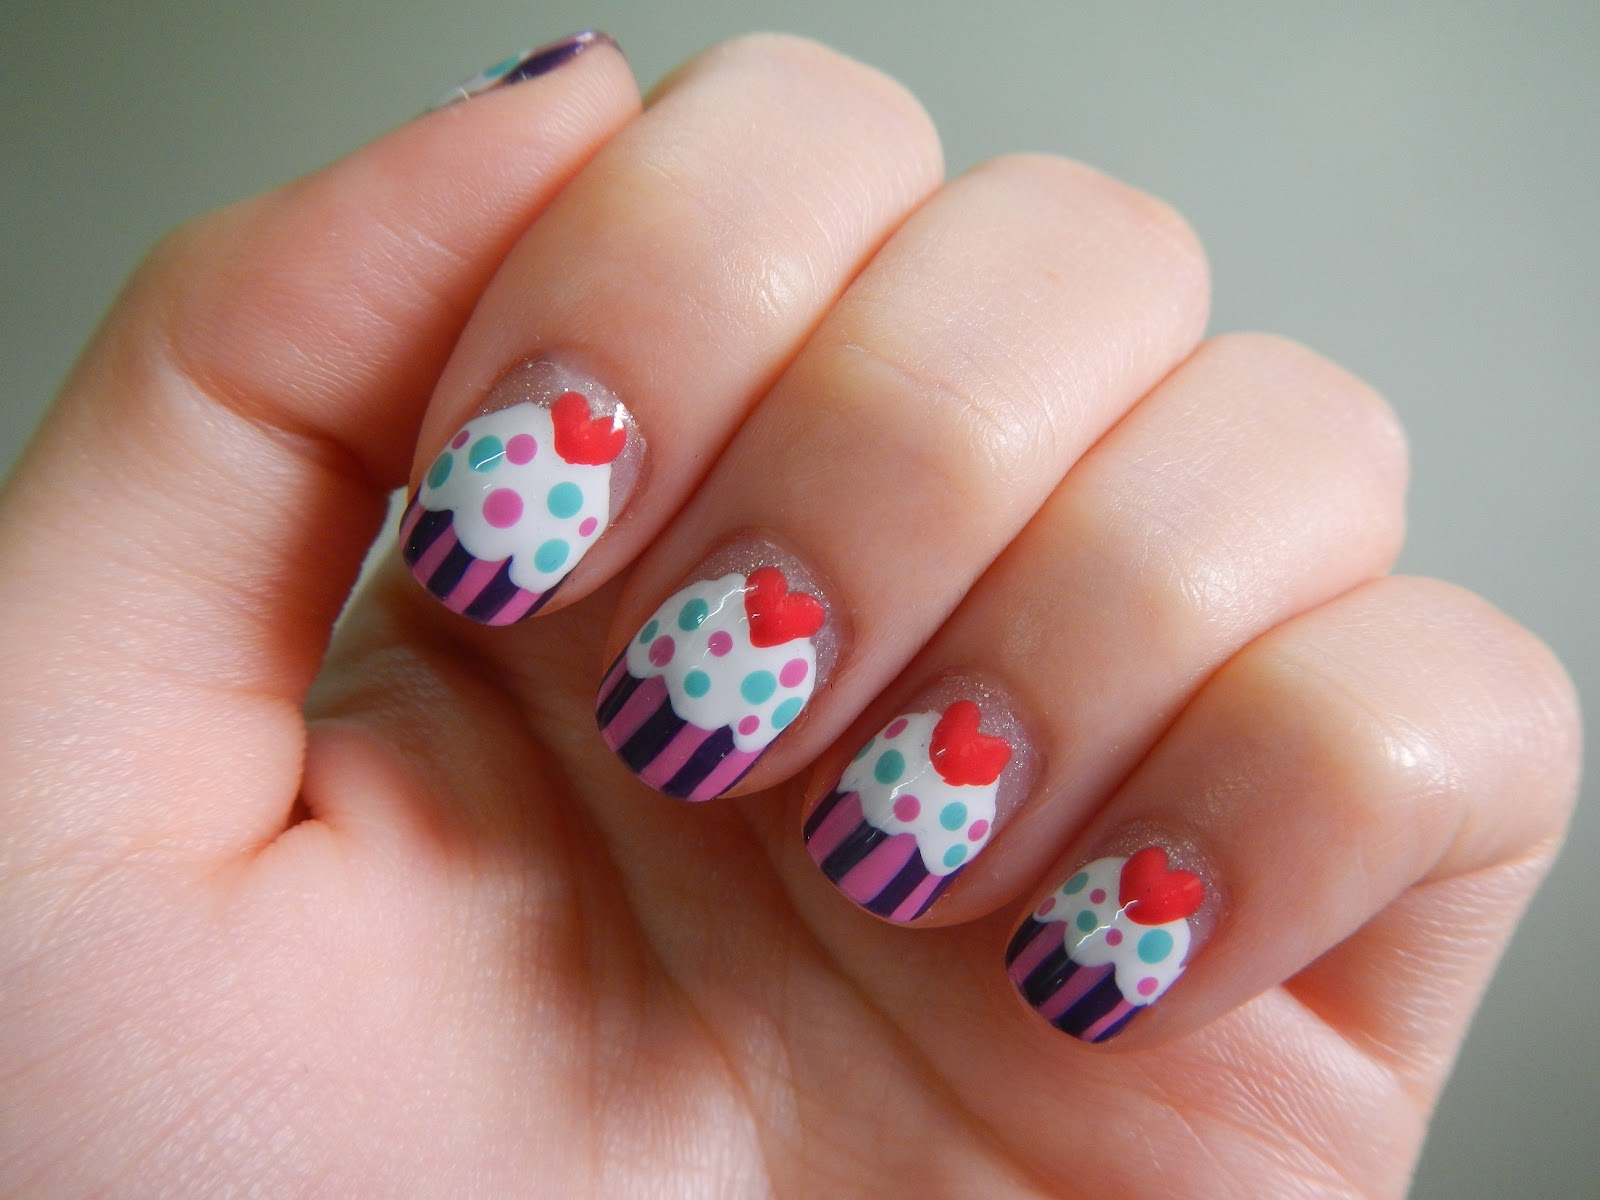 Best Nail Art Design: Cute Nail Design